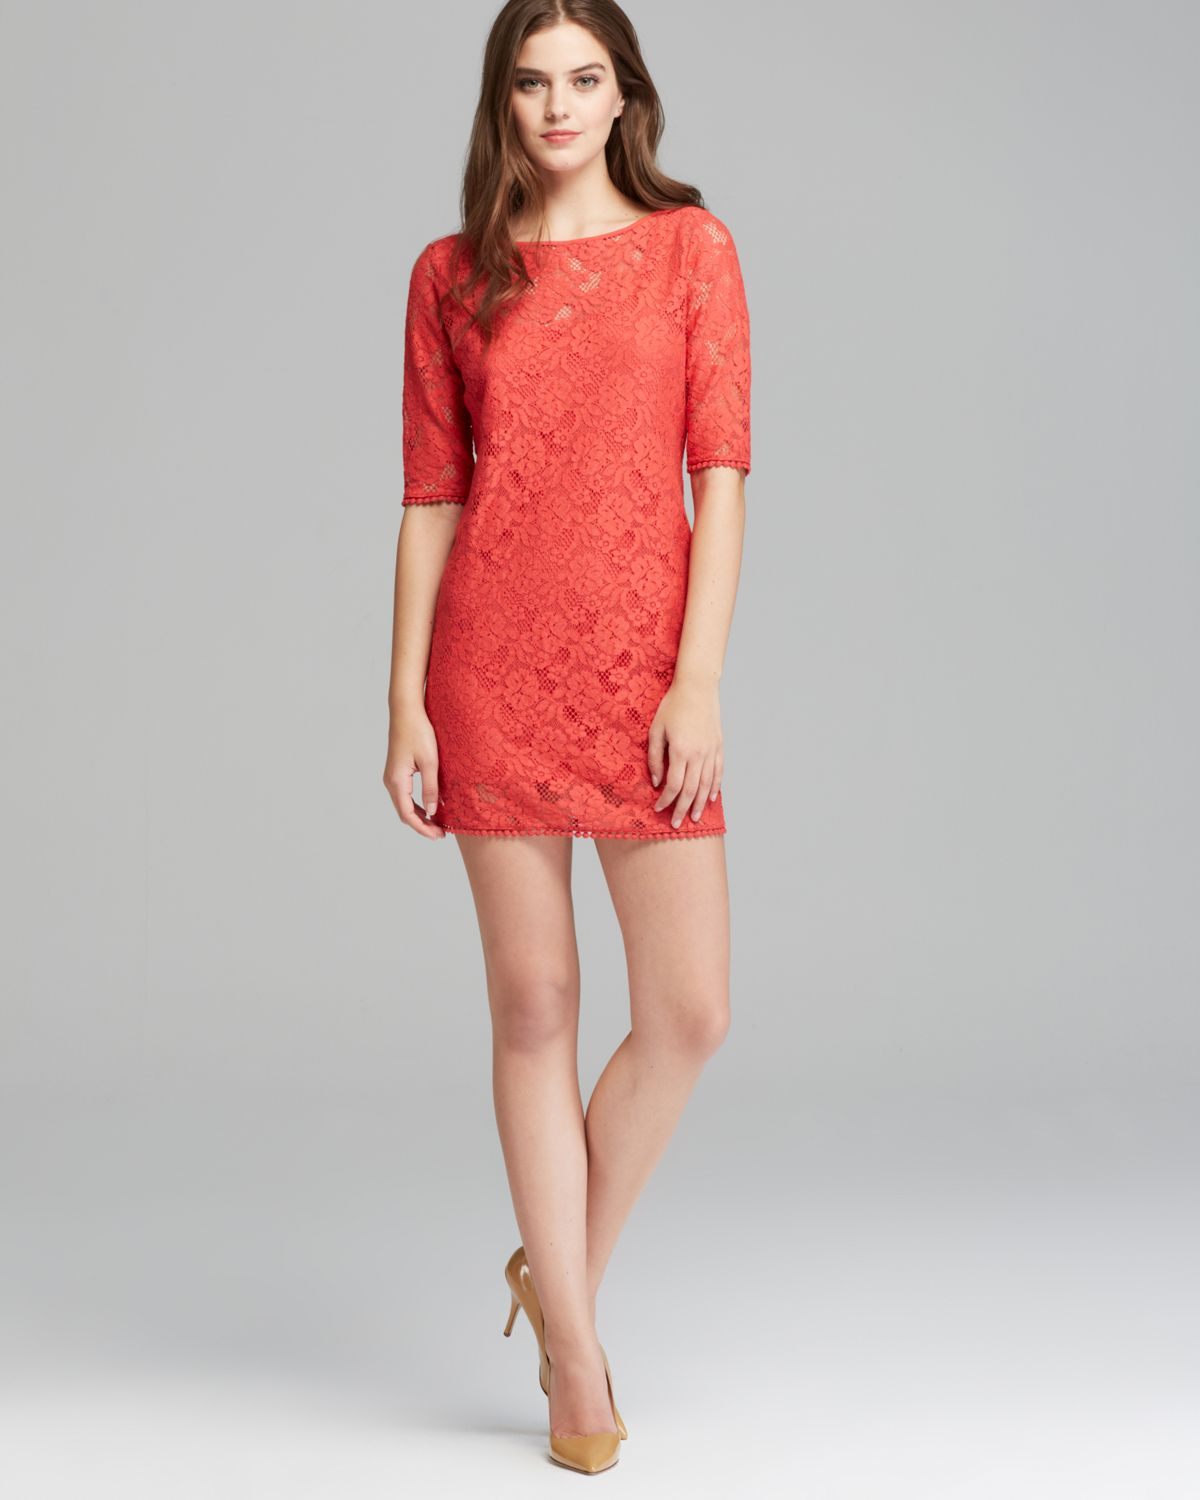 Three dots Three Quarter Sleeve Tunic Dress in Red | Lyst